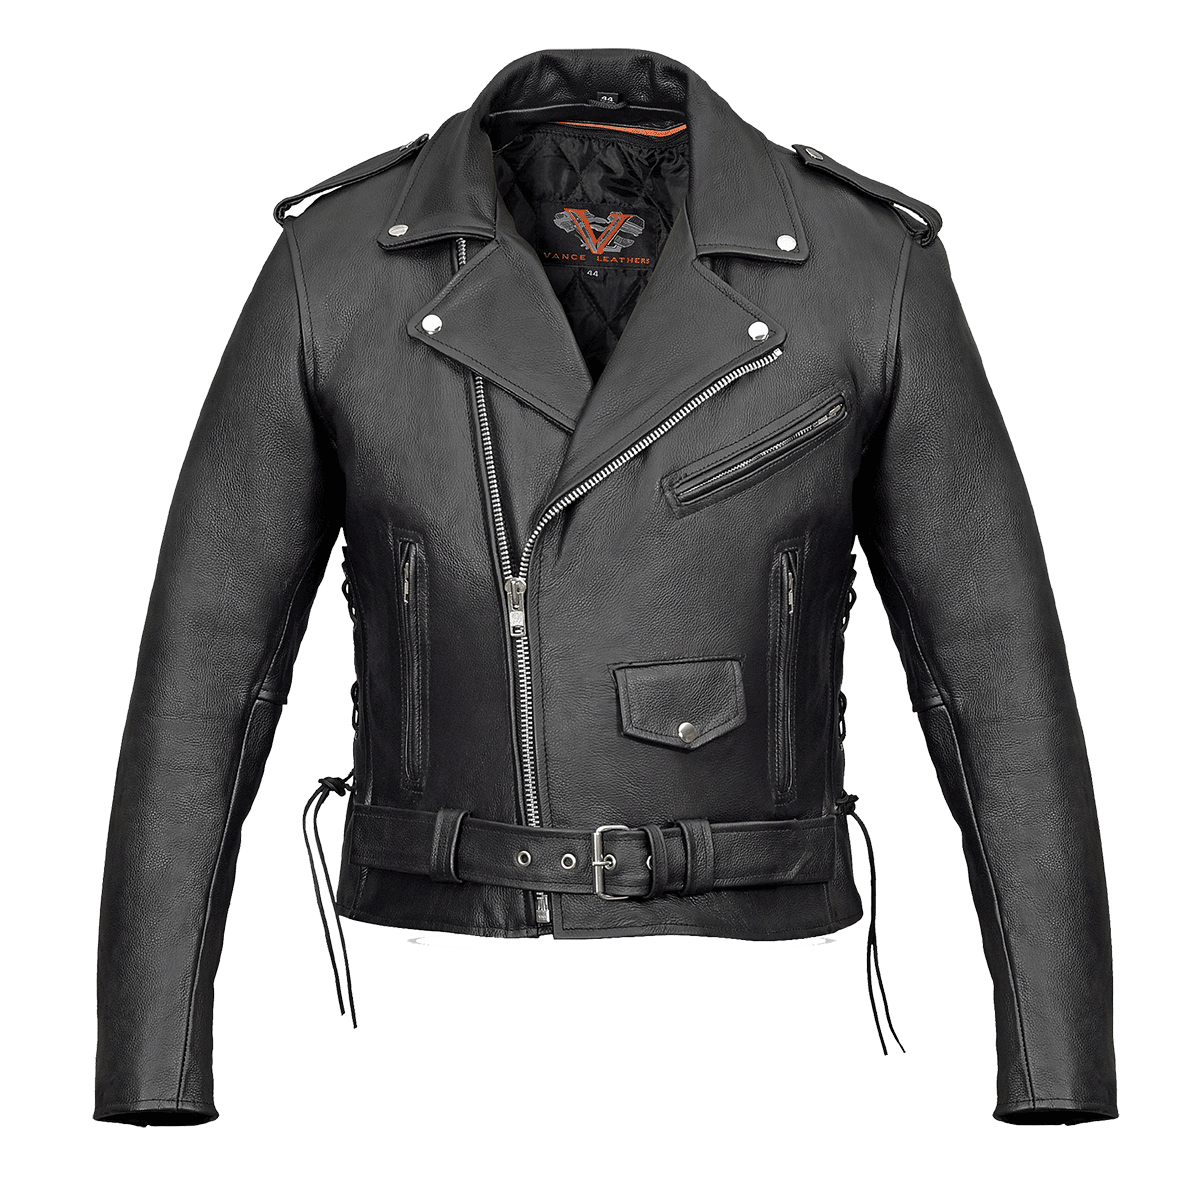 5276e06c0 Vance Leather VL515 Men's Top Grain Leather Classic Motorcycle Jacket